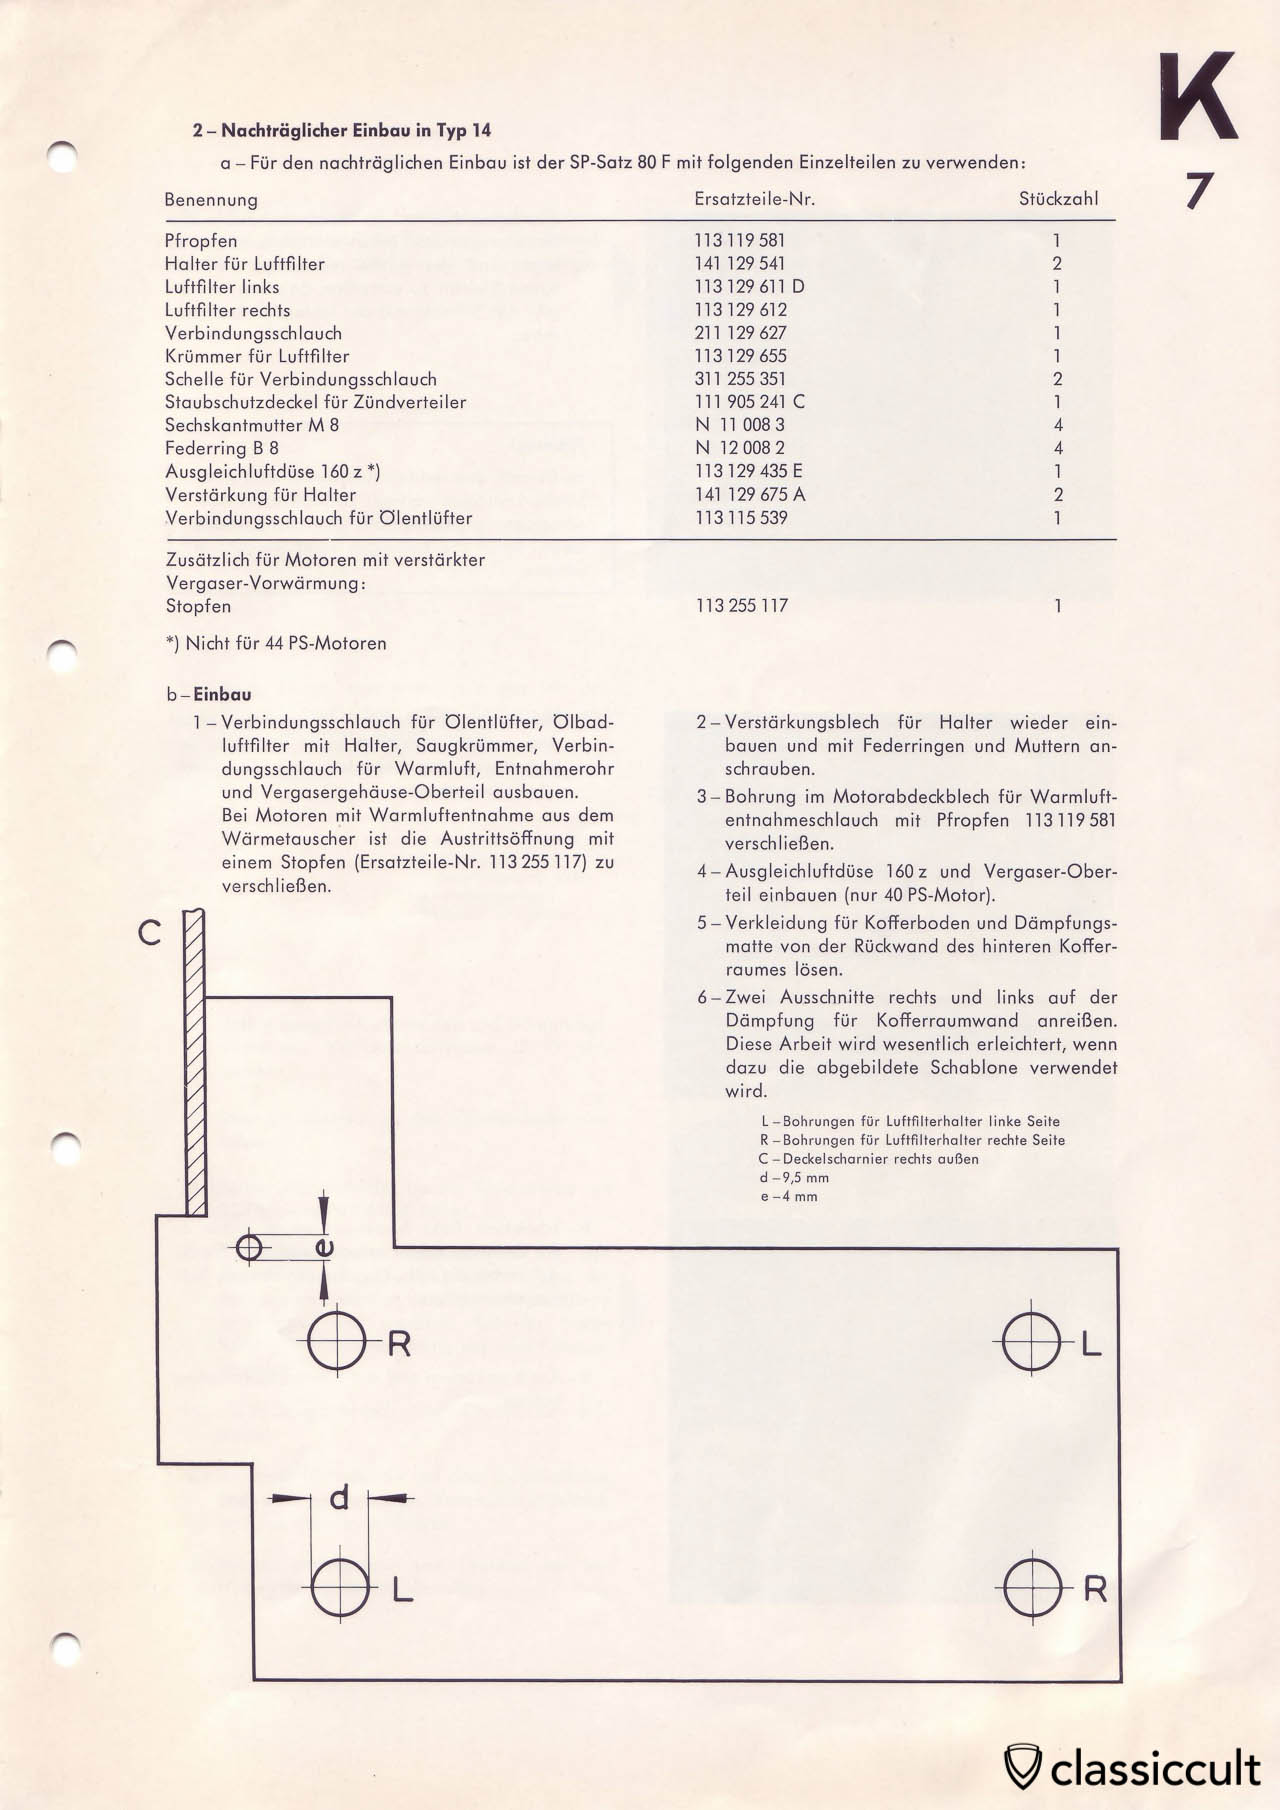 Mounting instructions for dusty conditions air cleaner in VW Karmann Ghia 1966.